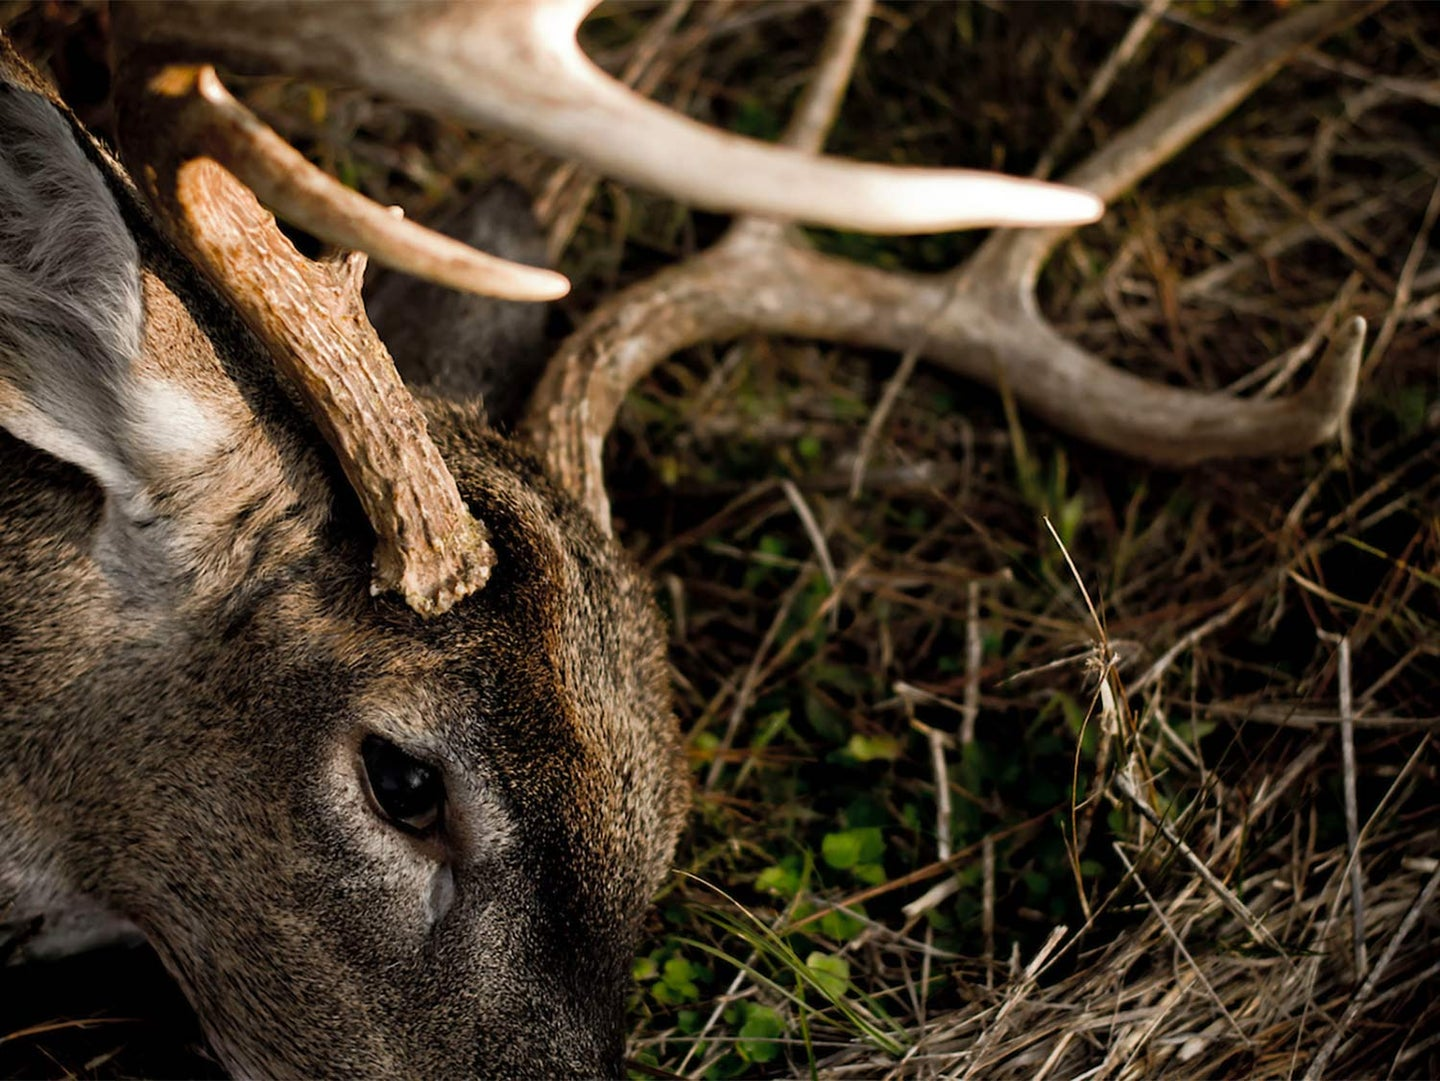 Close up details of a whitetail deer head and antlers with it lying in the dirt.